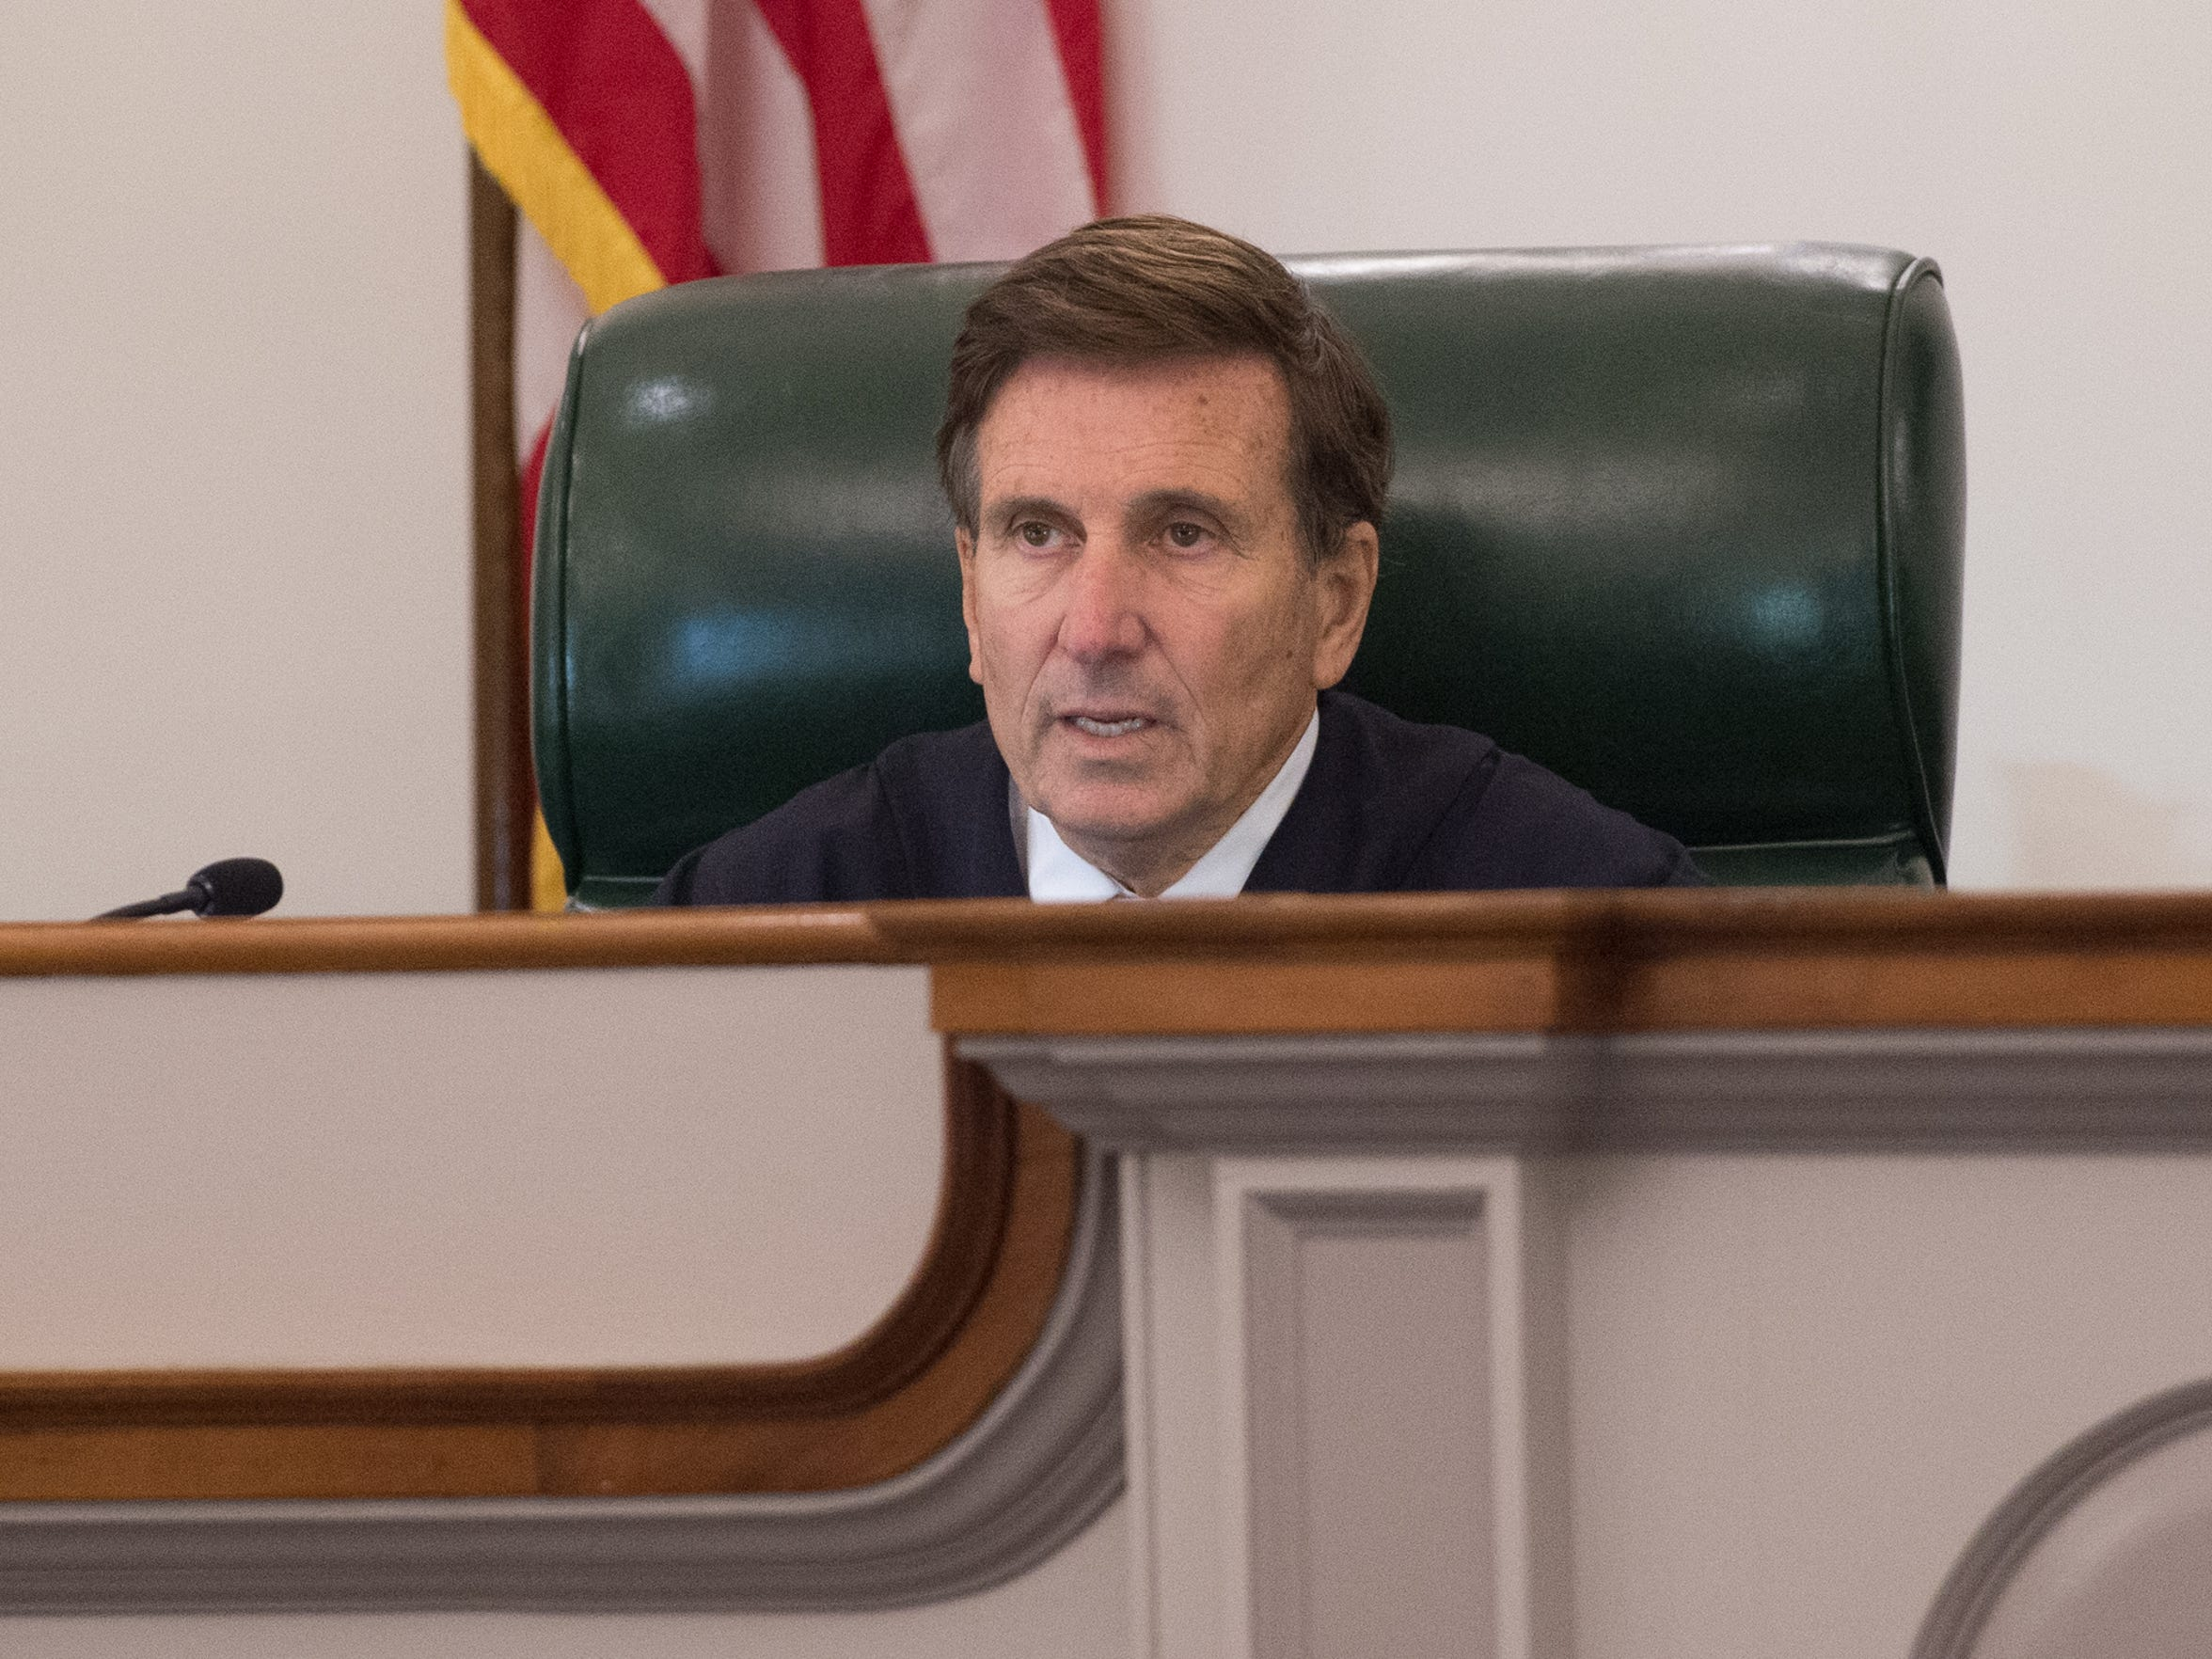 Delaware Supreme Court Justice Randy J. Holland asks a question during arguments over whether a lower court judge erred by ordering the Department of Correction to move defendant Isaiah McCoy out of solitary confinement. McCoy was convicted of first-degree murder and sentenced to death, before the Supreme Court overturned his conviction and ordered a retrial last year.